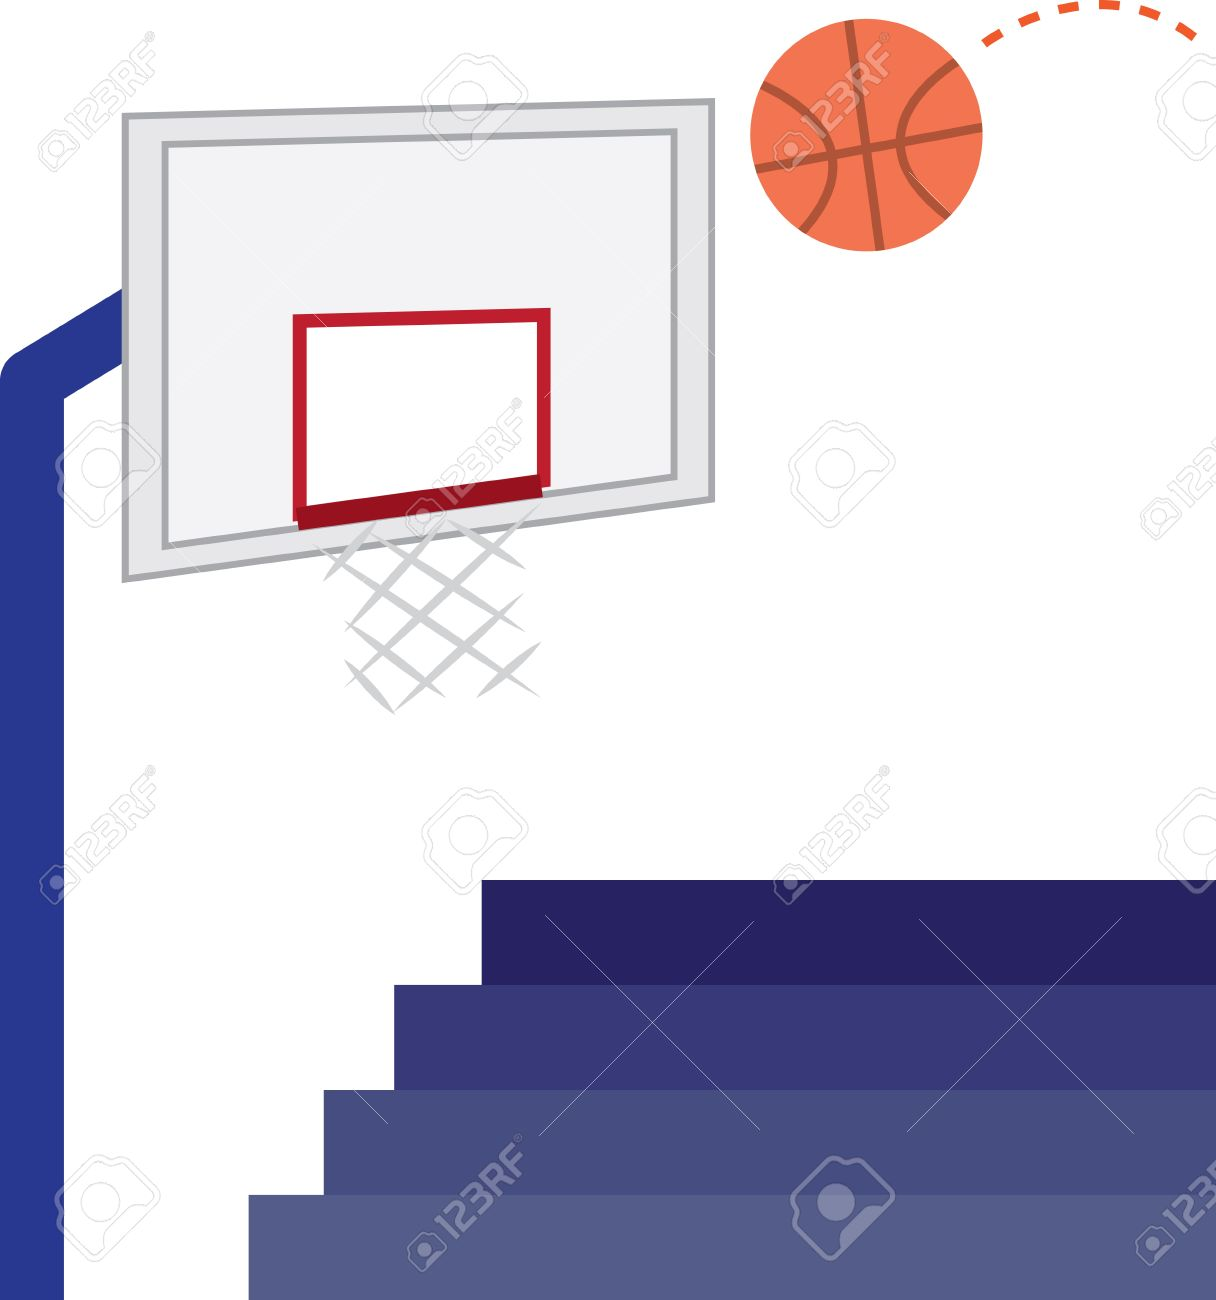 Basketball Hoop, Basketball And Bleachers Royalty Free Cliparts.